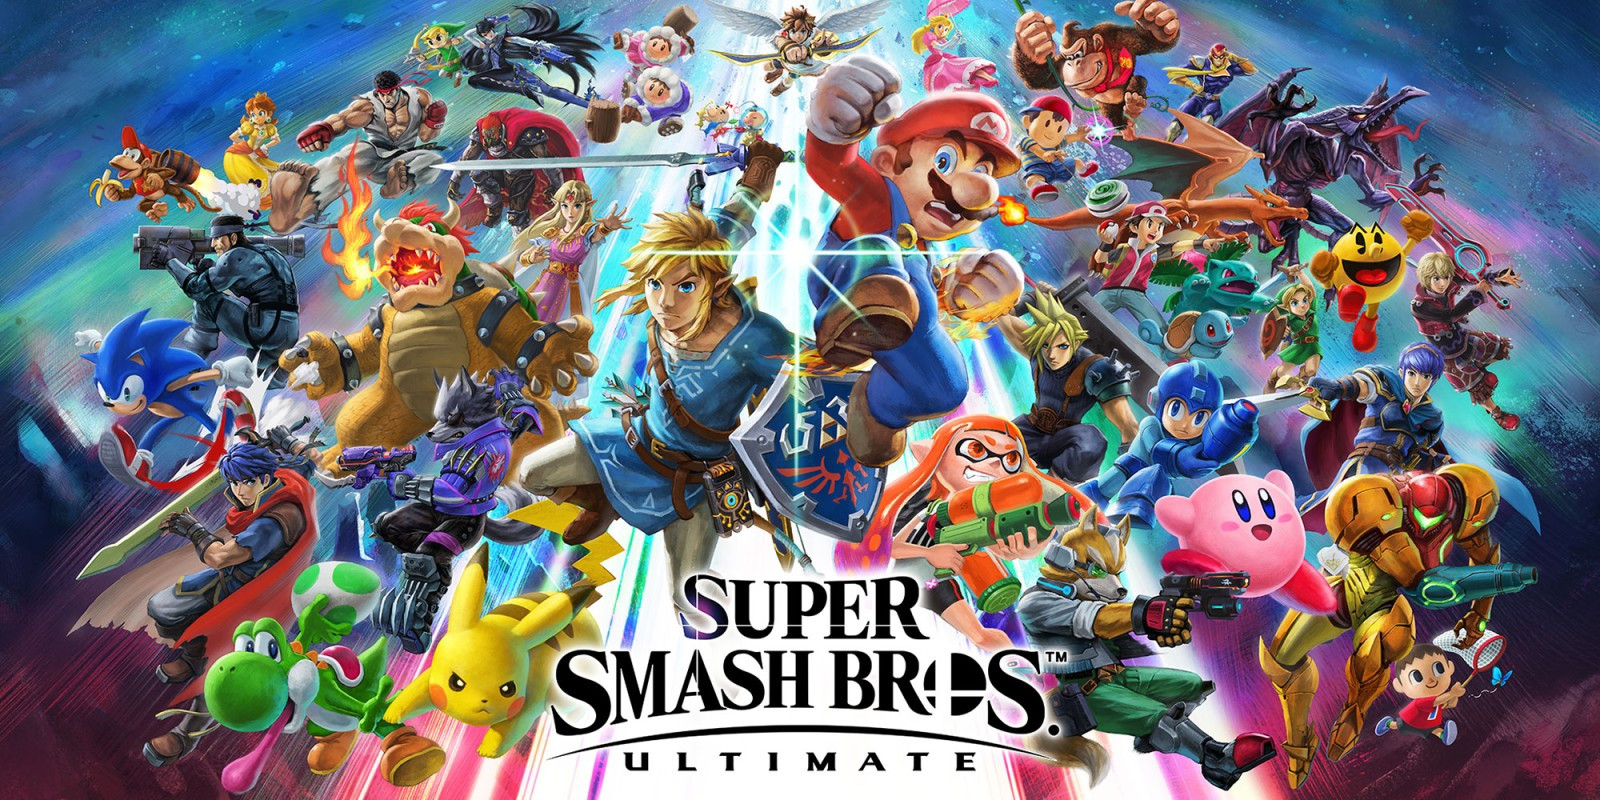 Games Inbox: Who will be the final Smash Bros. Ultimate DLC fighter?